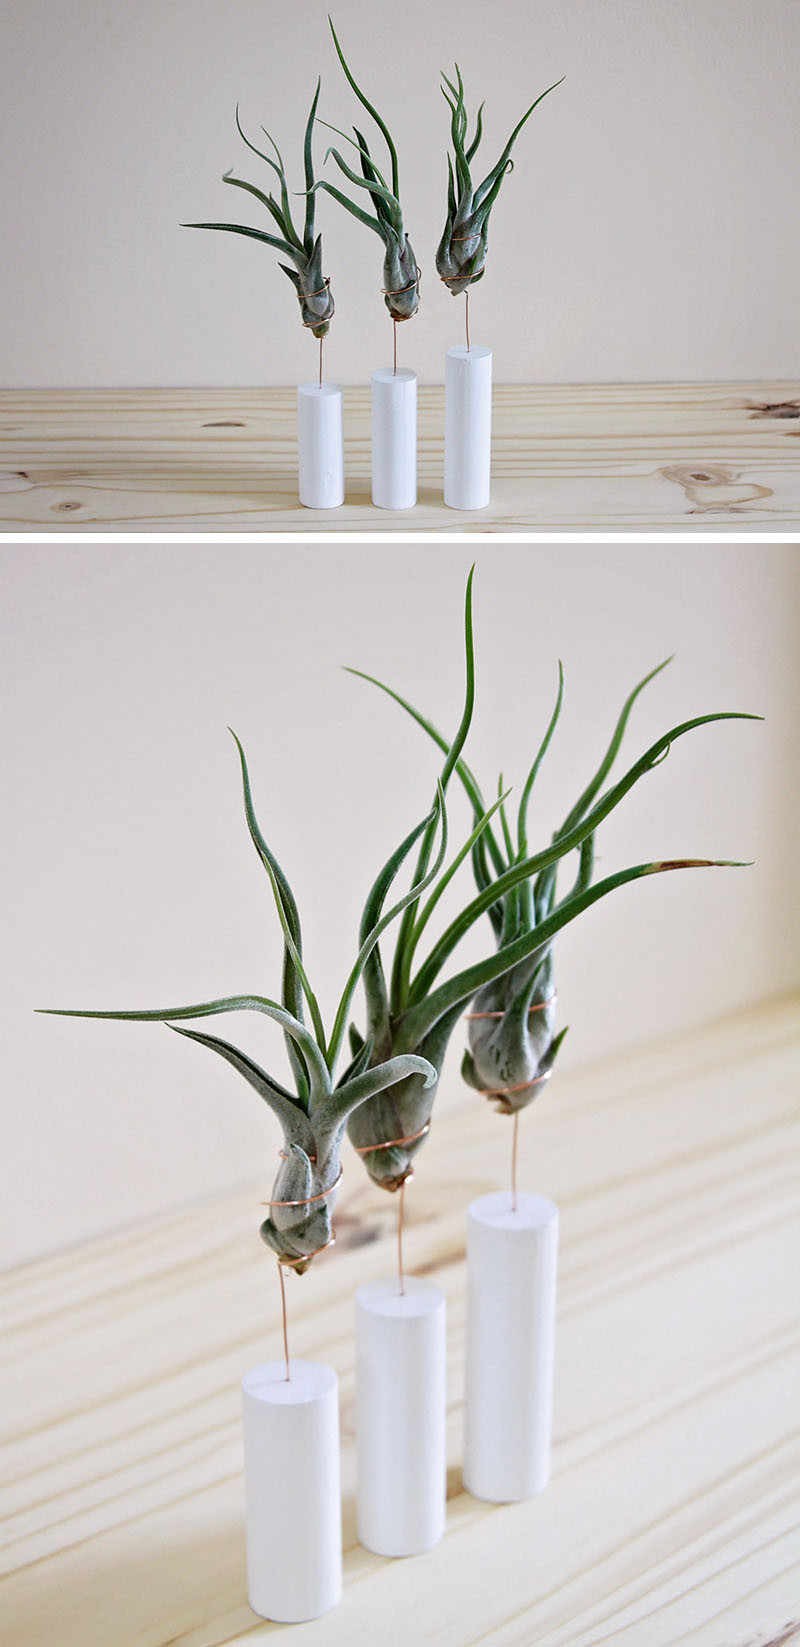 12 Elegant Ways To Bring Air Plants Into Your Home // Simple stands are another way to display air plants. #AirPlants #ModernHomeDecor #Planters #ModernDecor